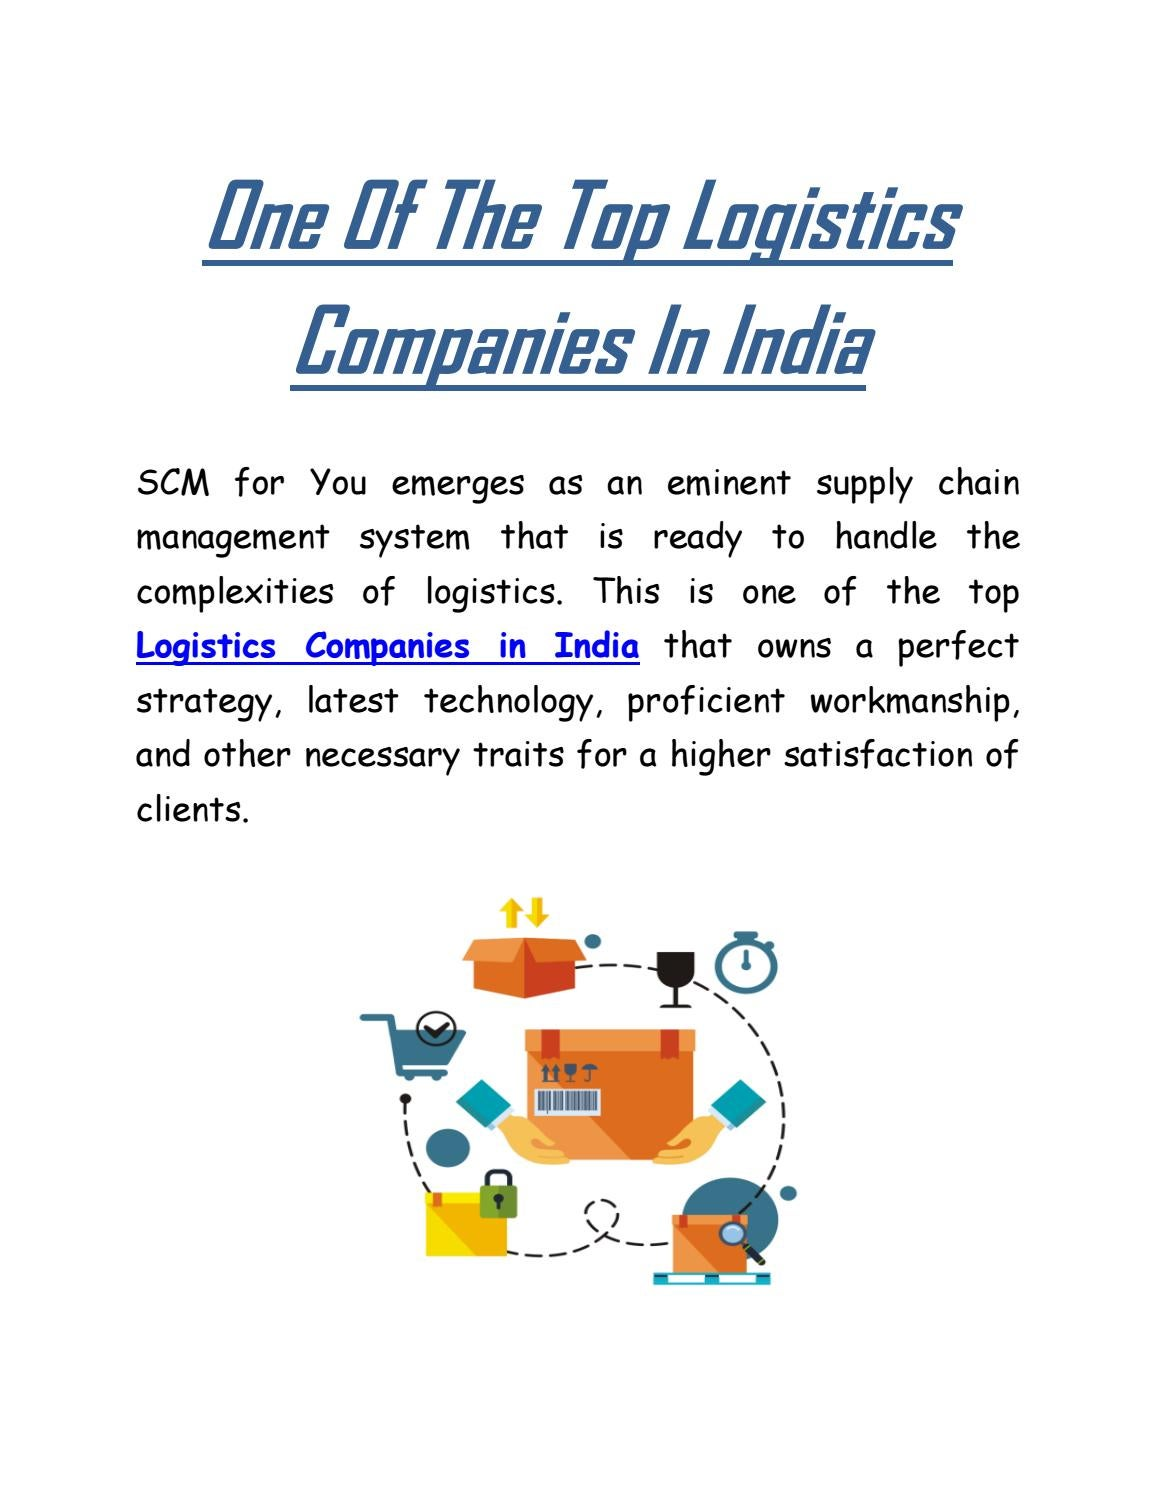 One Of The Top Logistics Companies In India by SCM FOR YOU